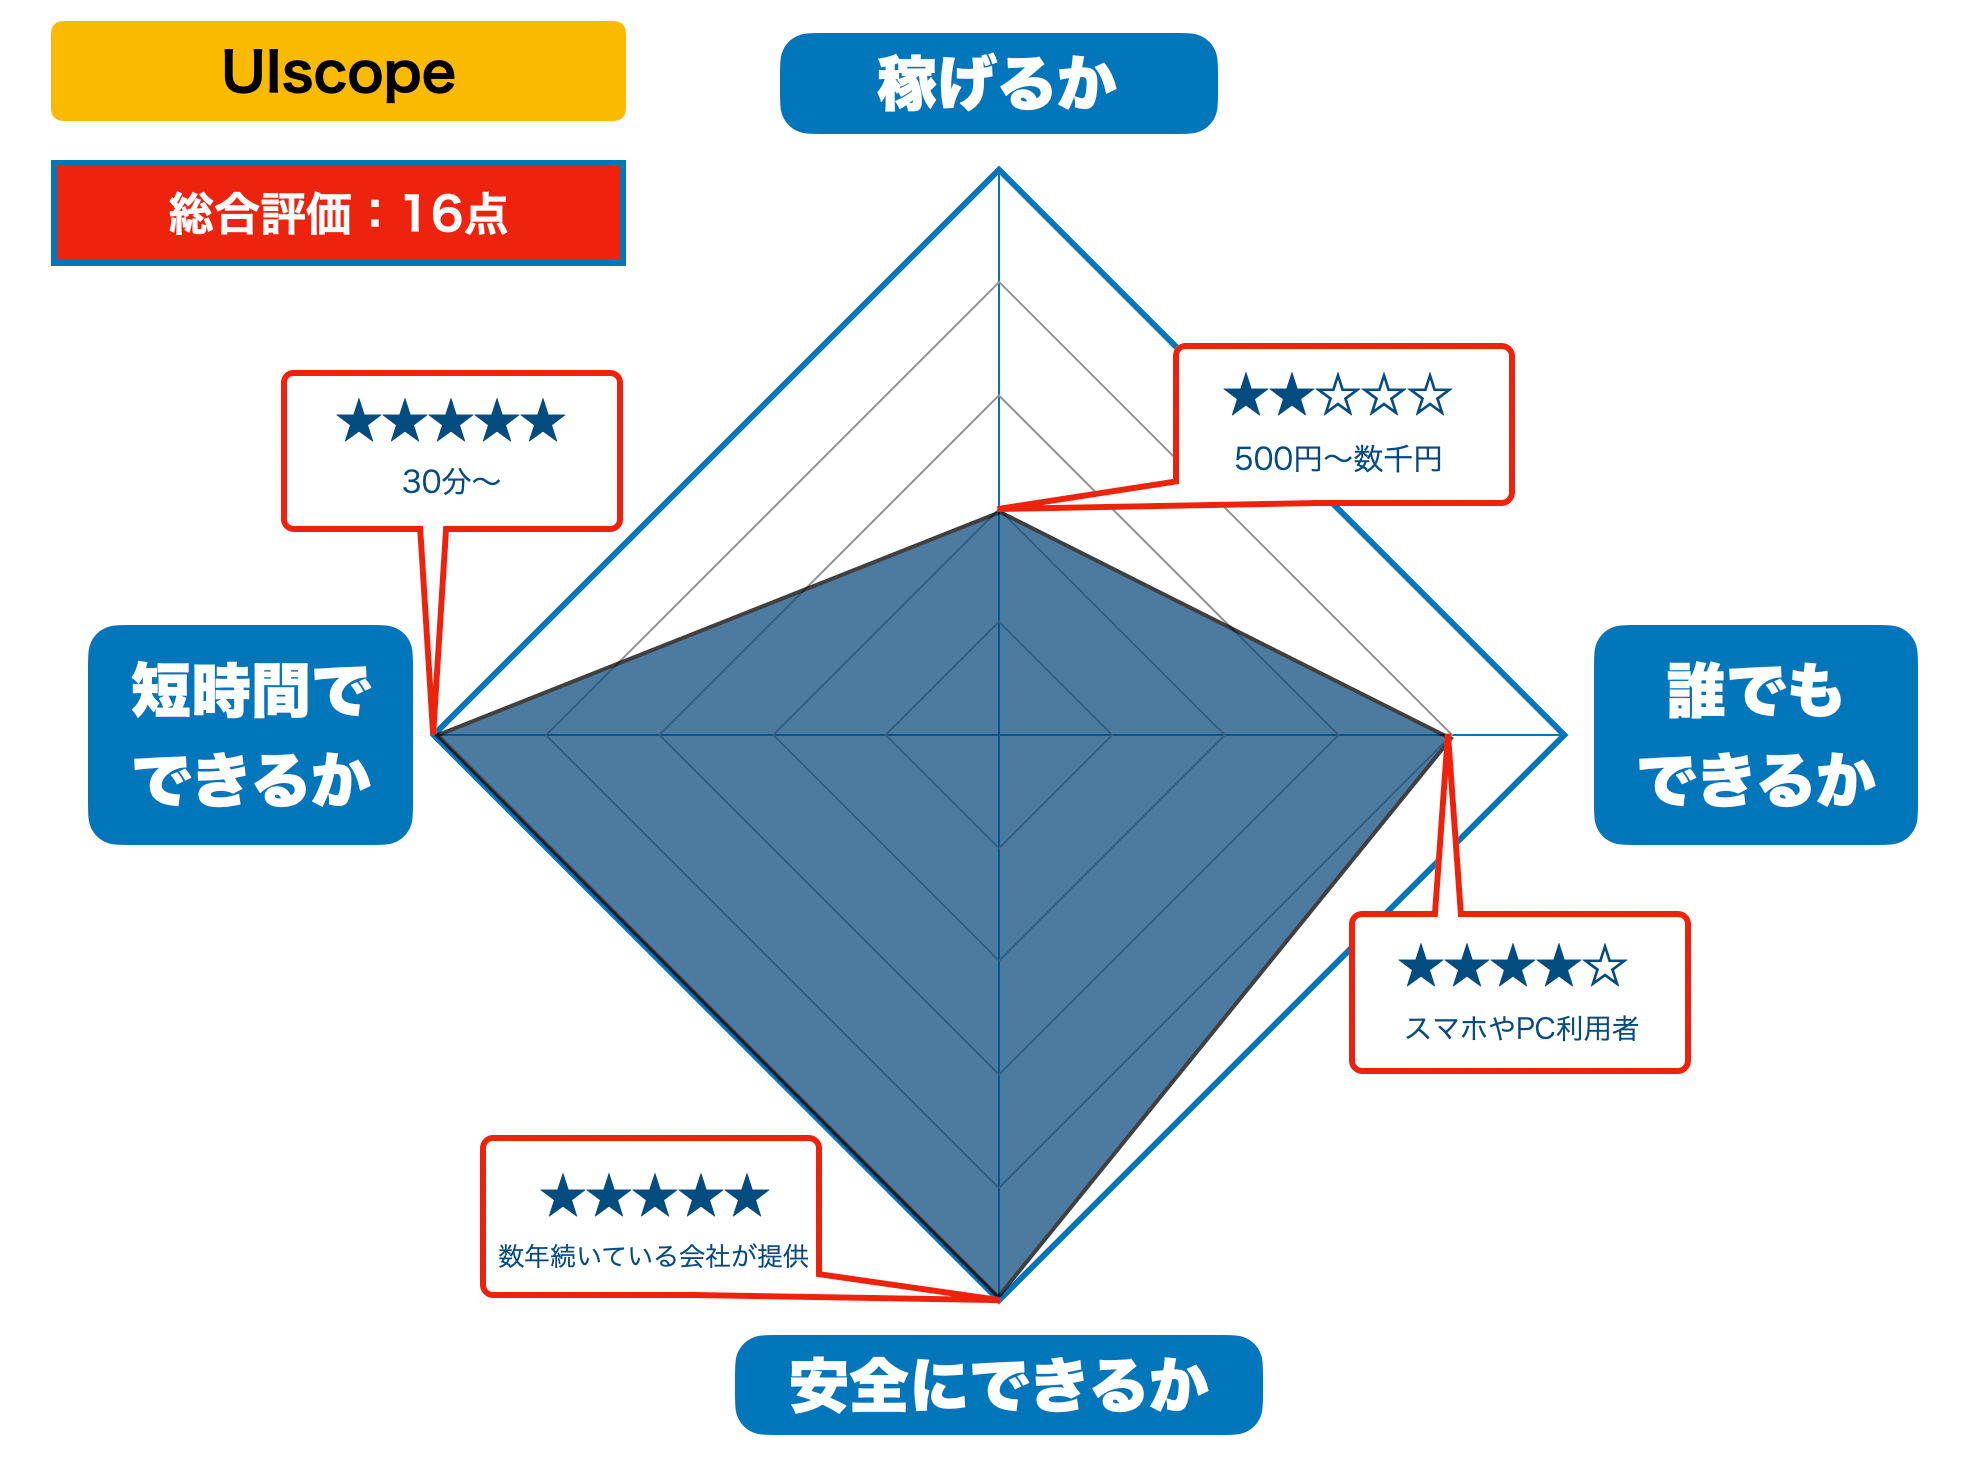 UIscopeの評価(2021年版)